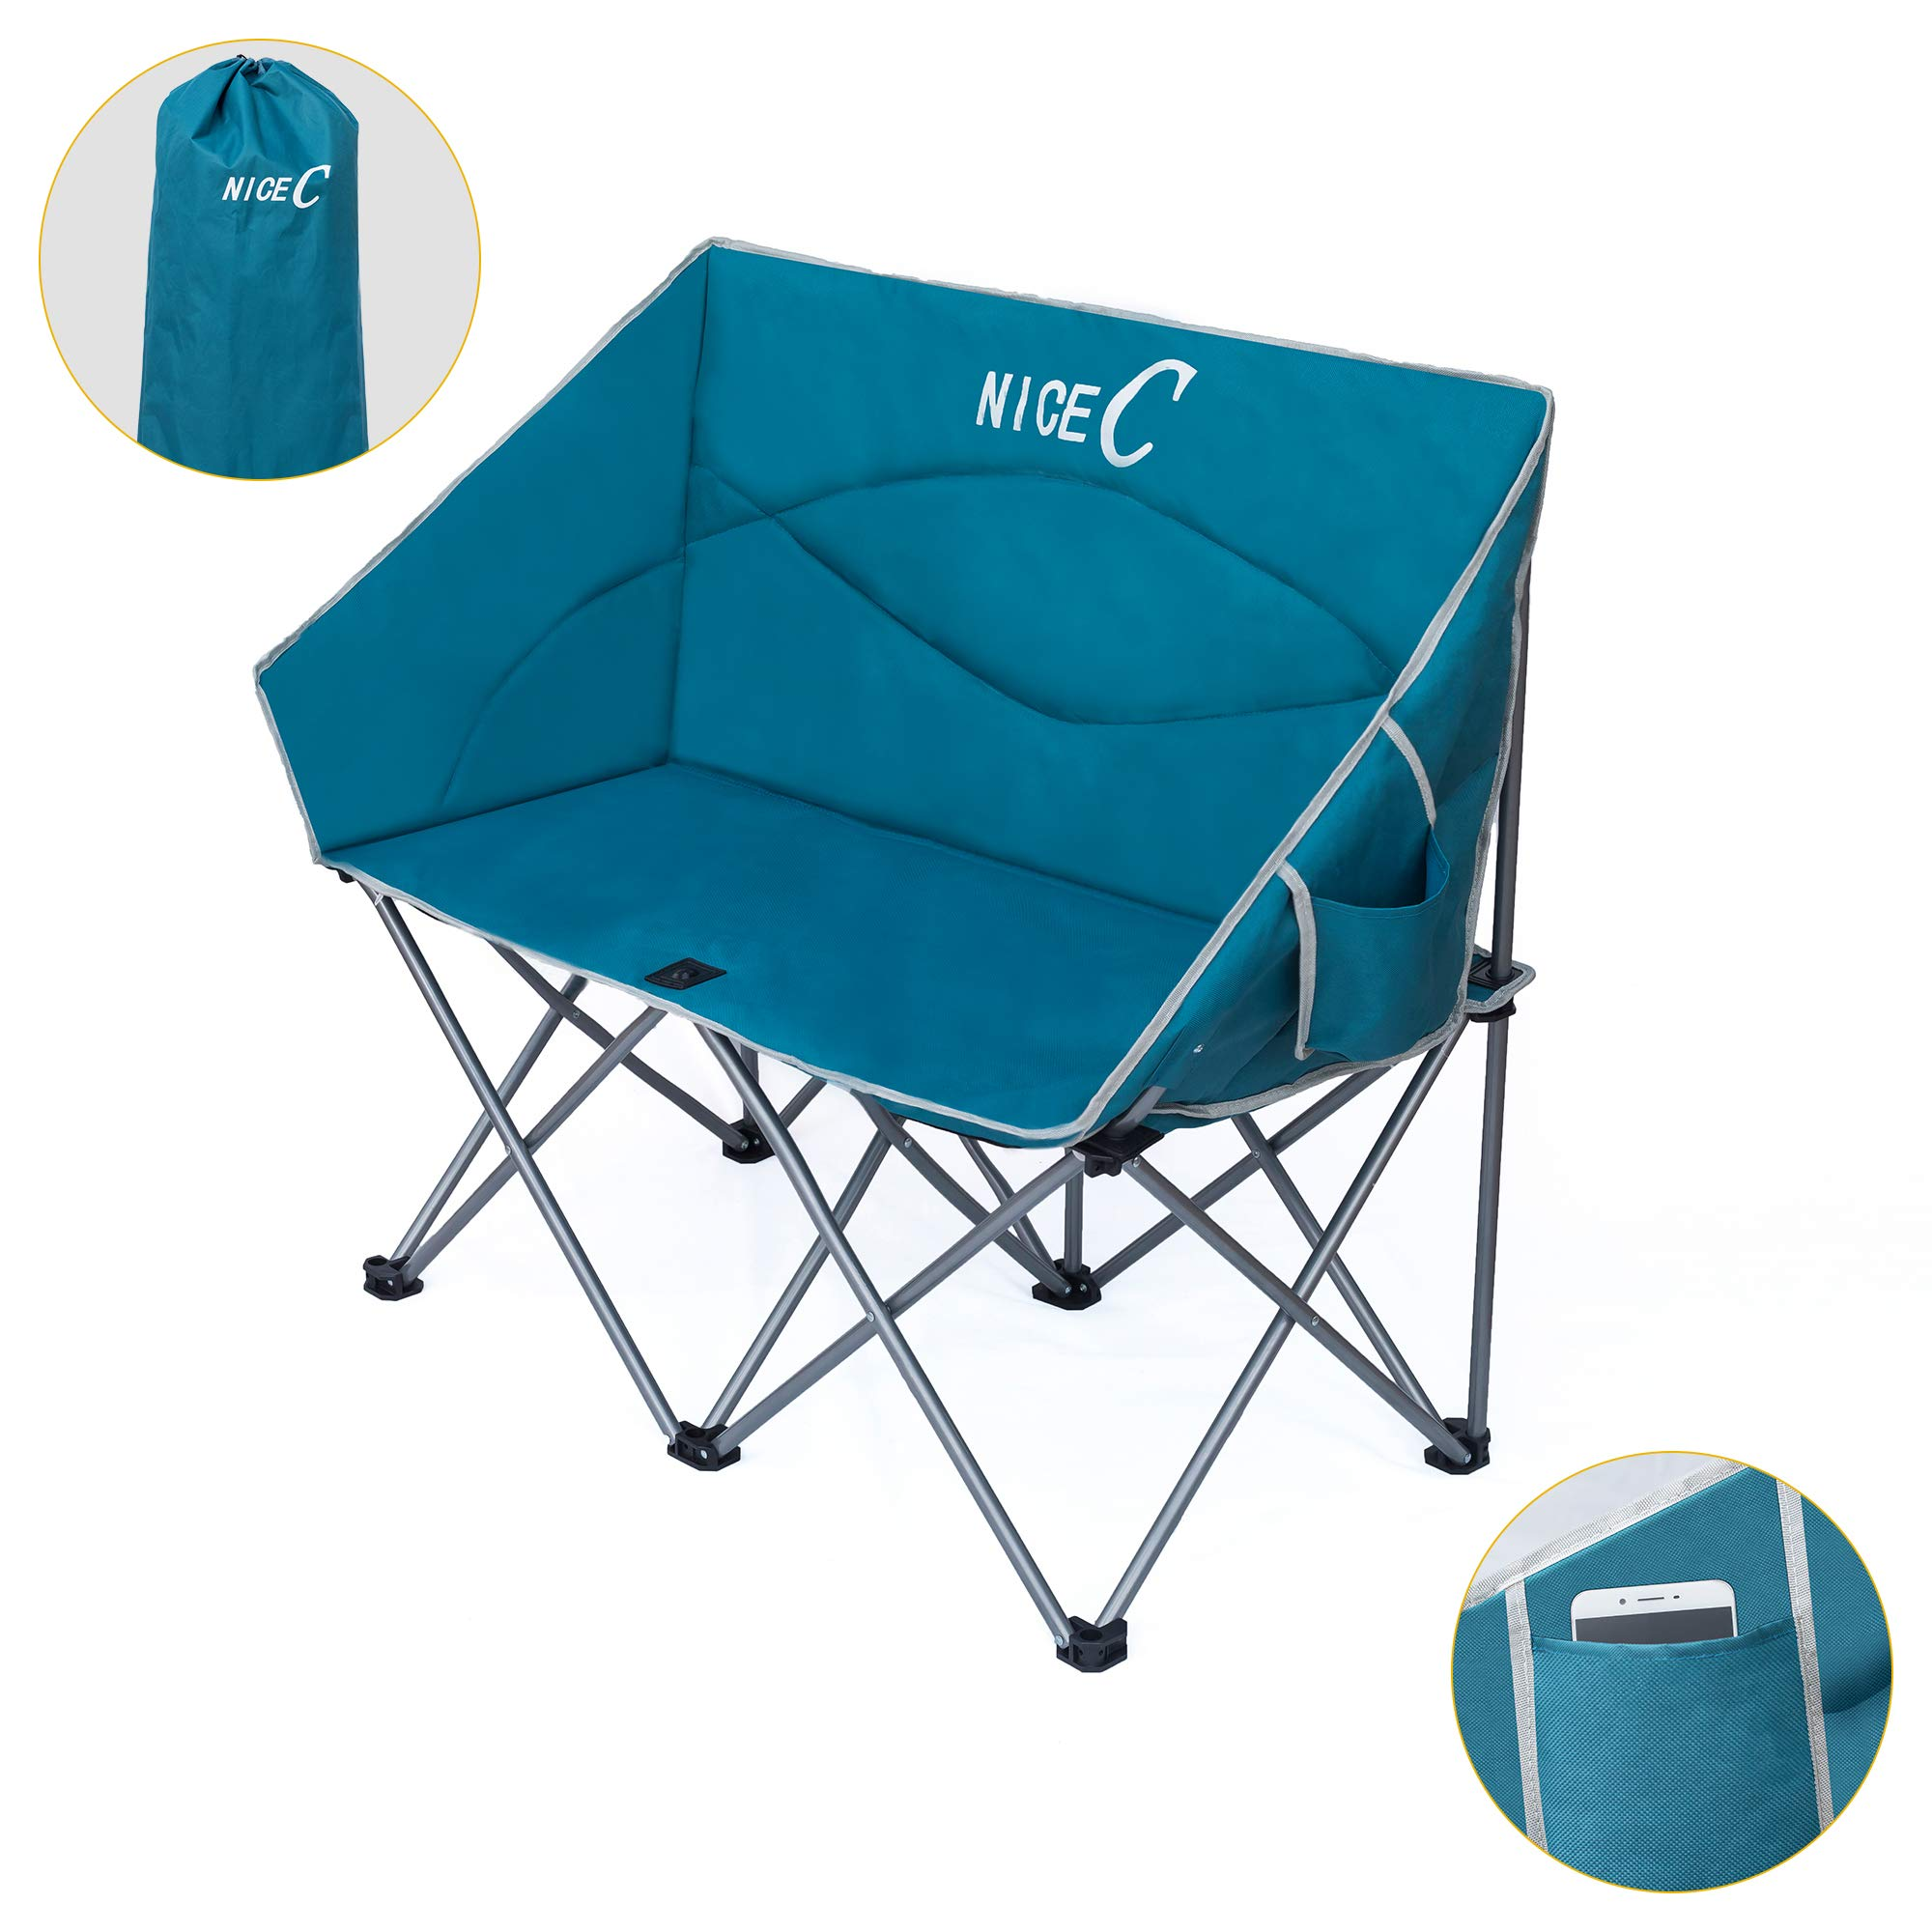 Nice C Double Camping Chair, Loveseat, Oversized Folding Camp seat with Strap Carry Bag(Blue) by Nice C